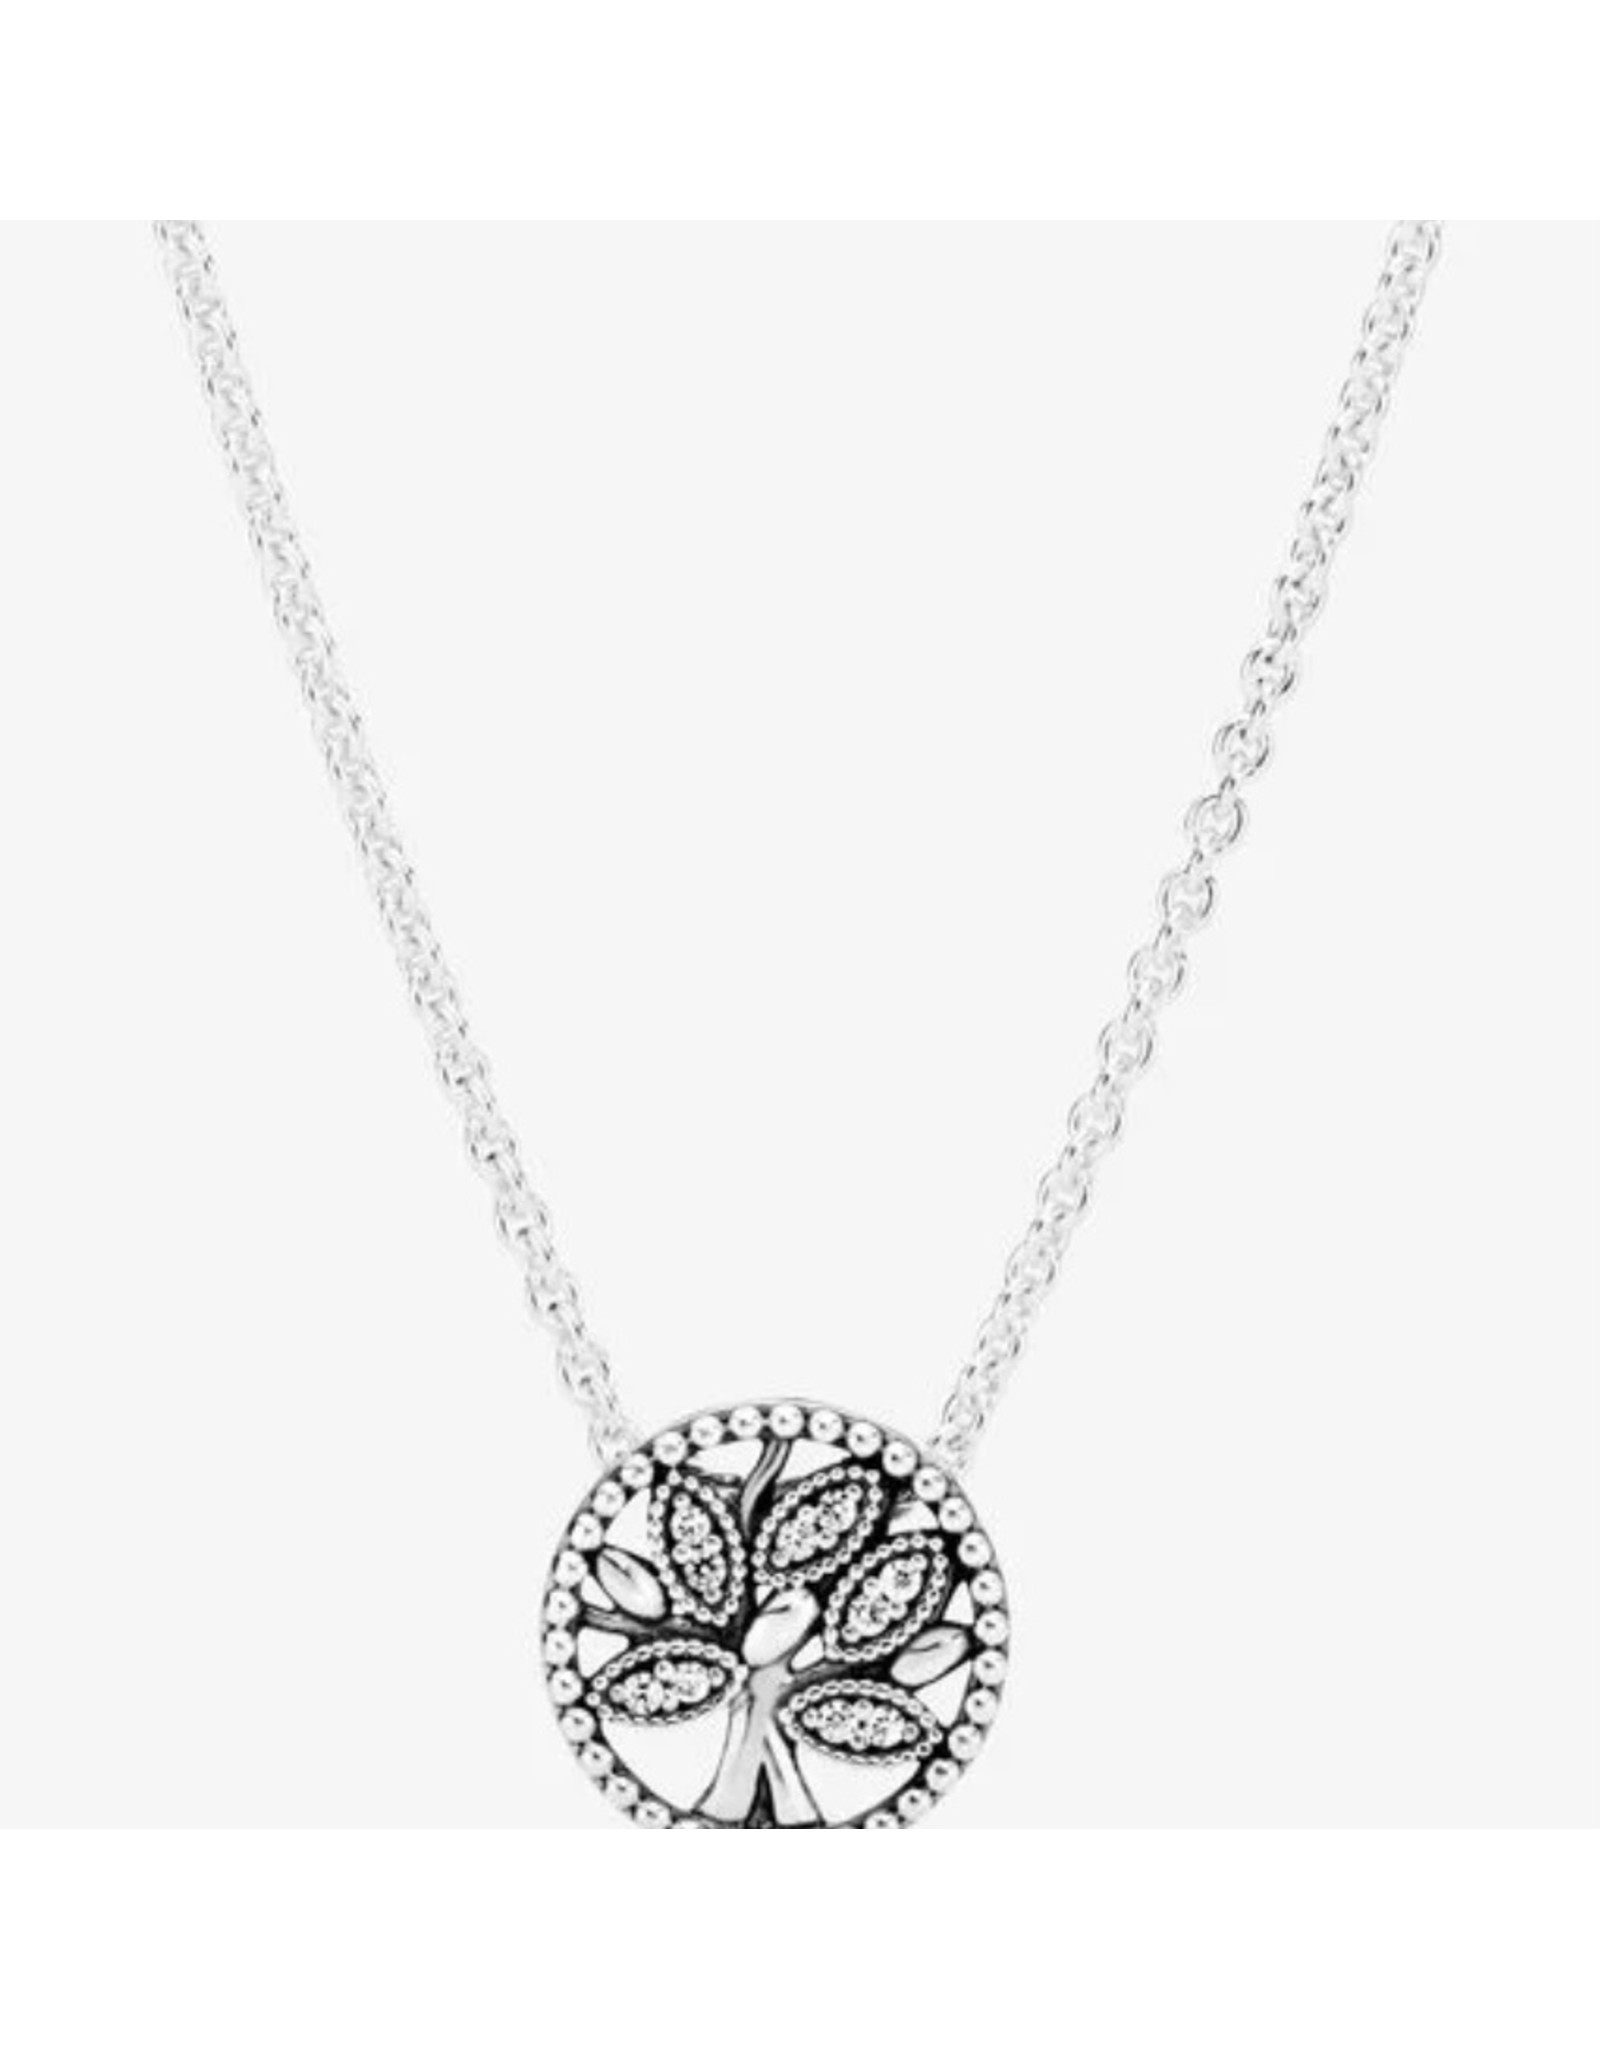 Pandora Pandora Necklace,397780CZ-45,Tree Of Life Clear CZ